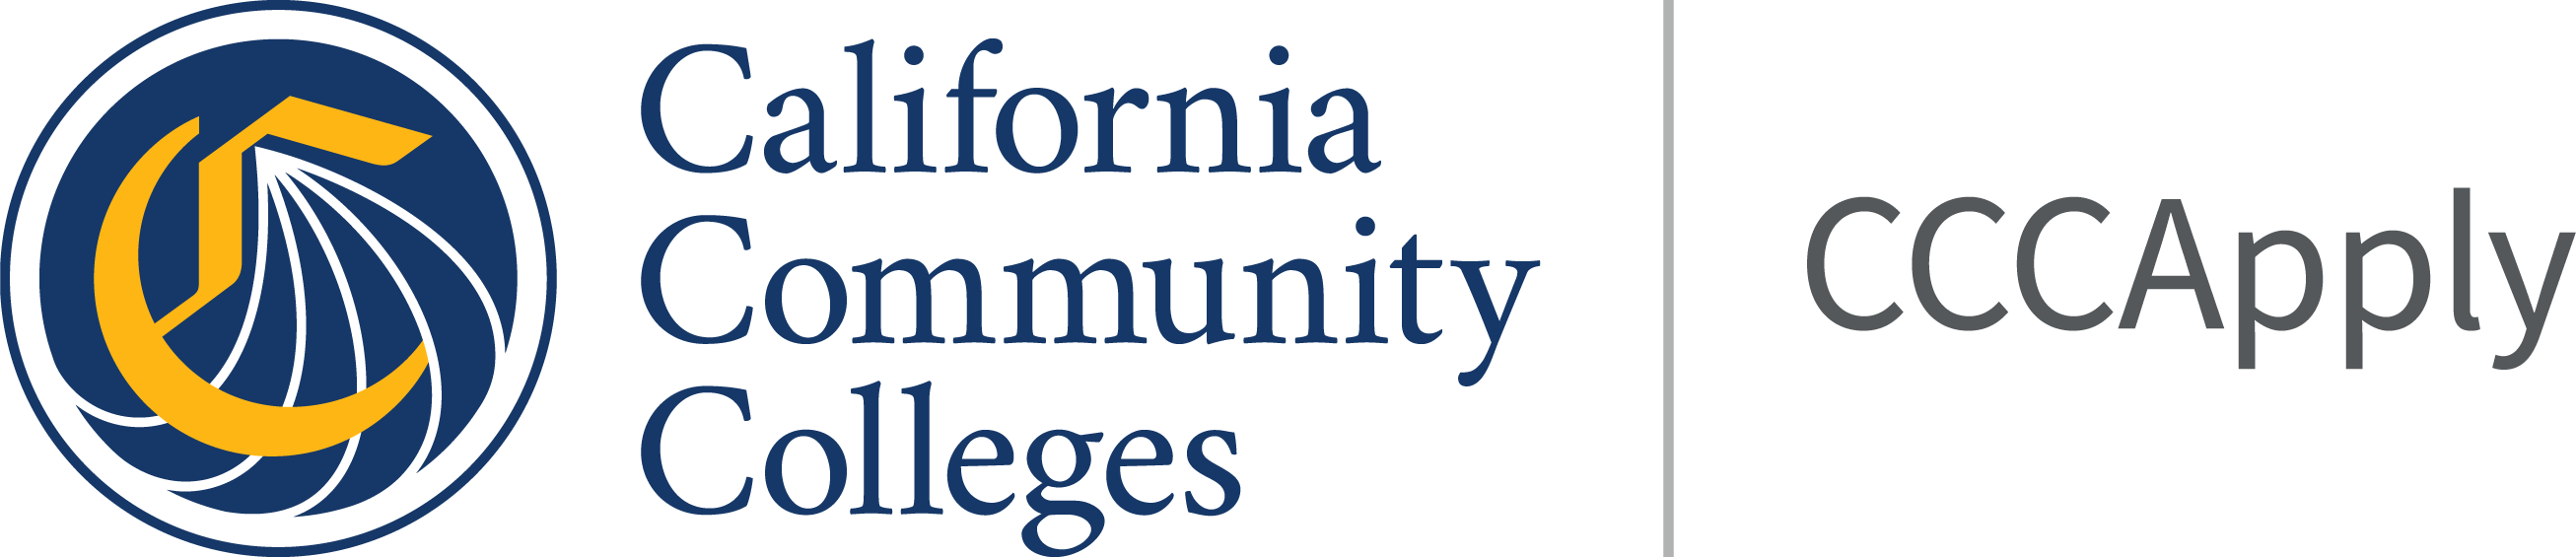 California Community Colleges CCCApply